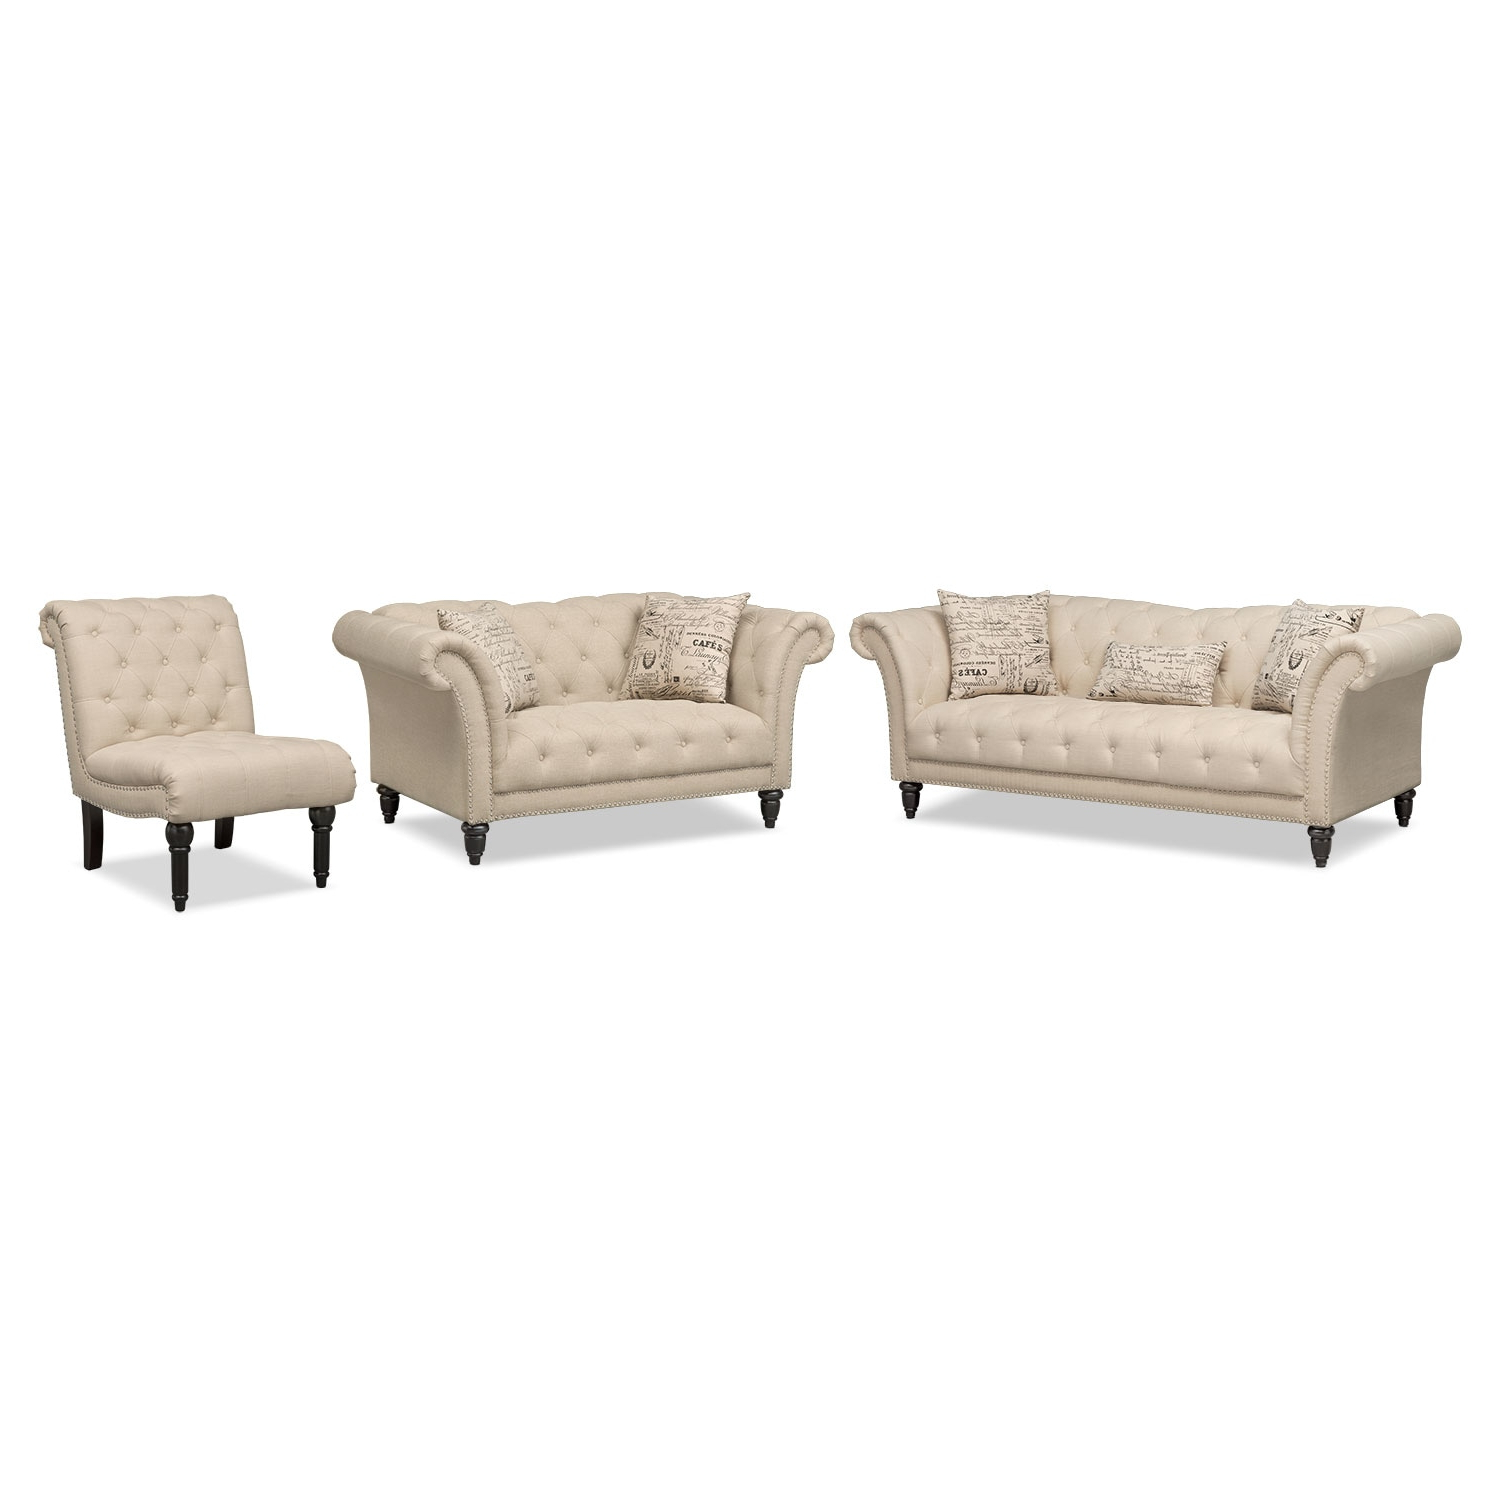 Best And Newest Marisol Sofa, Loveseat And Armless Chair Set (View 3 of 20)